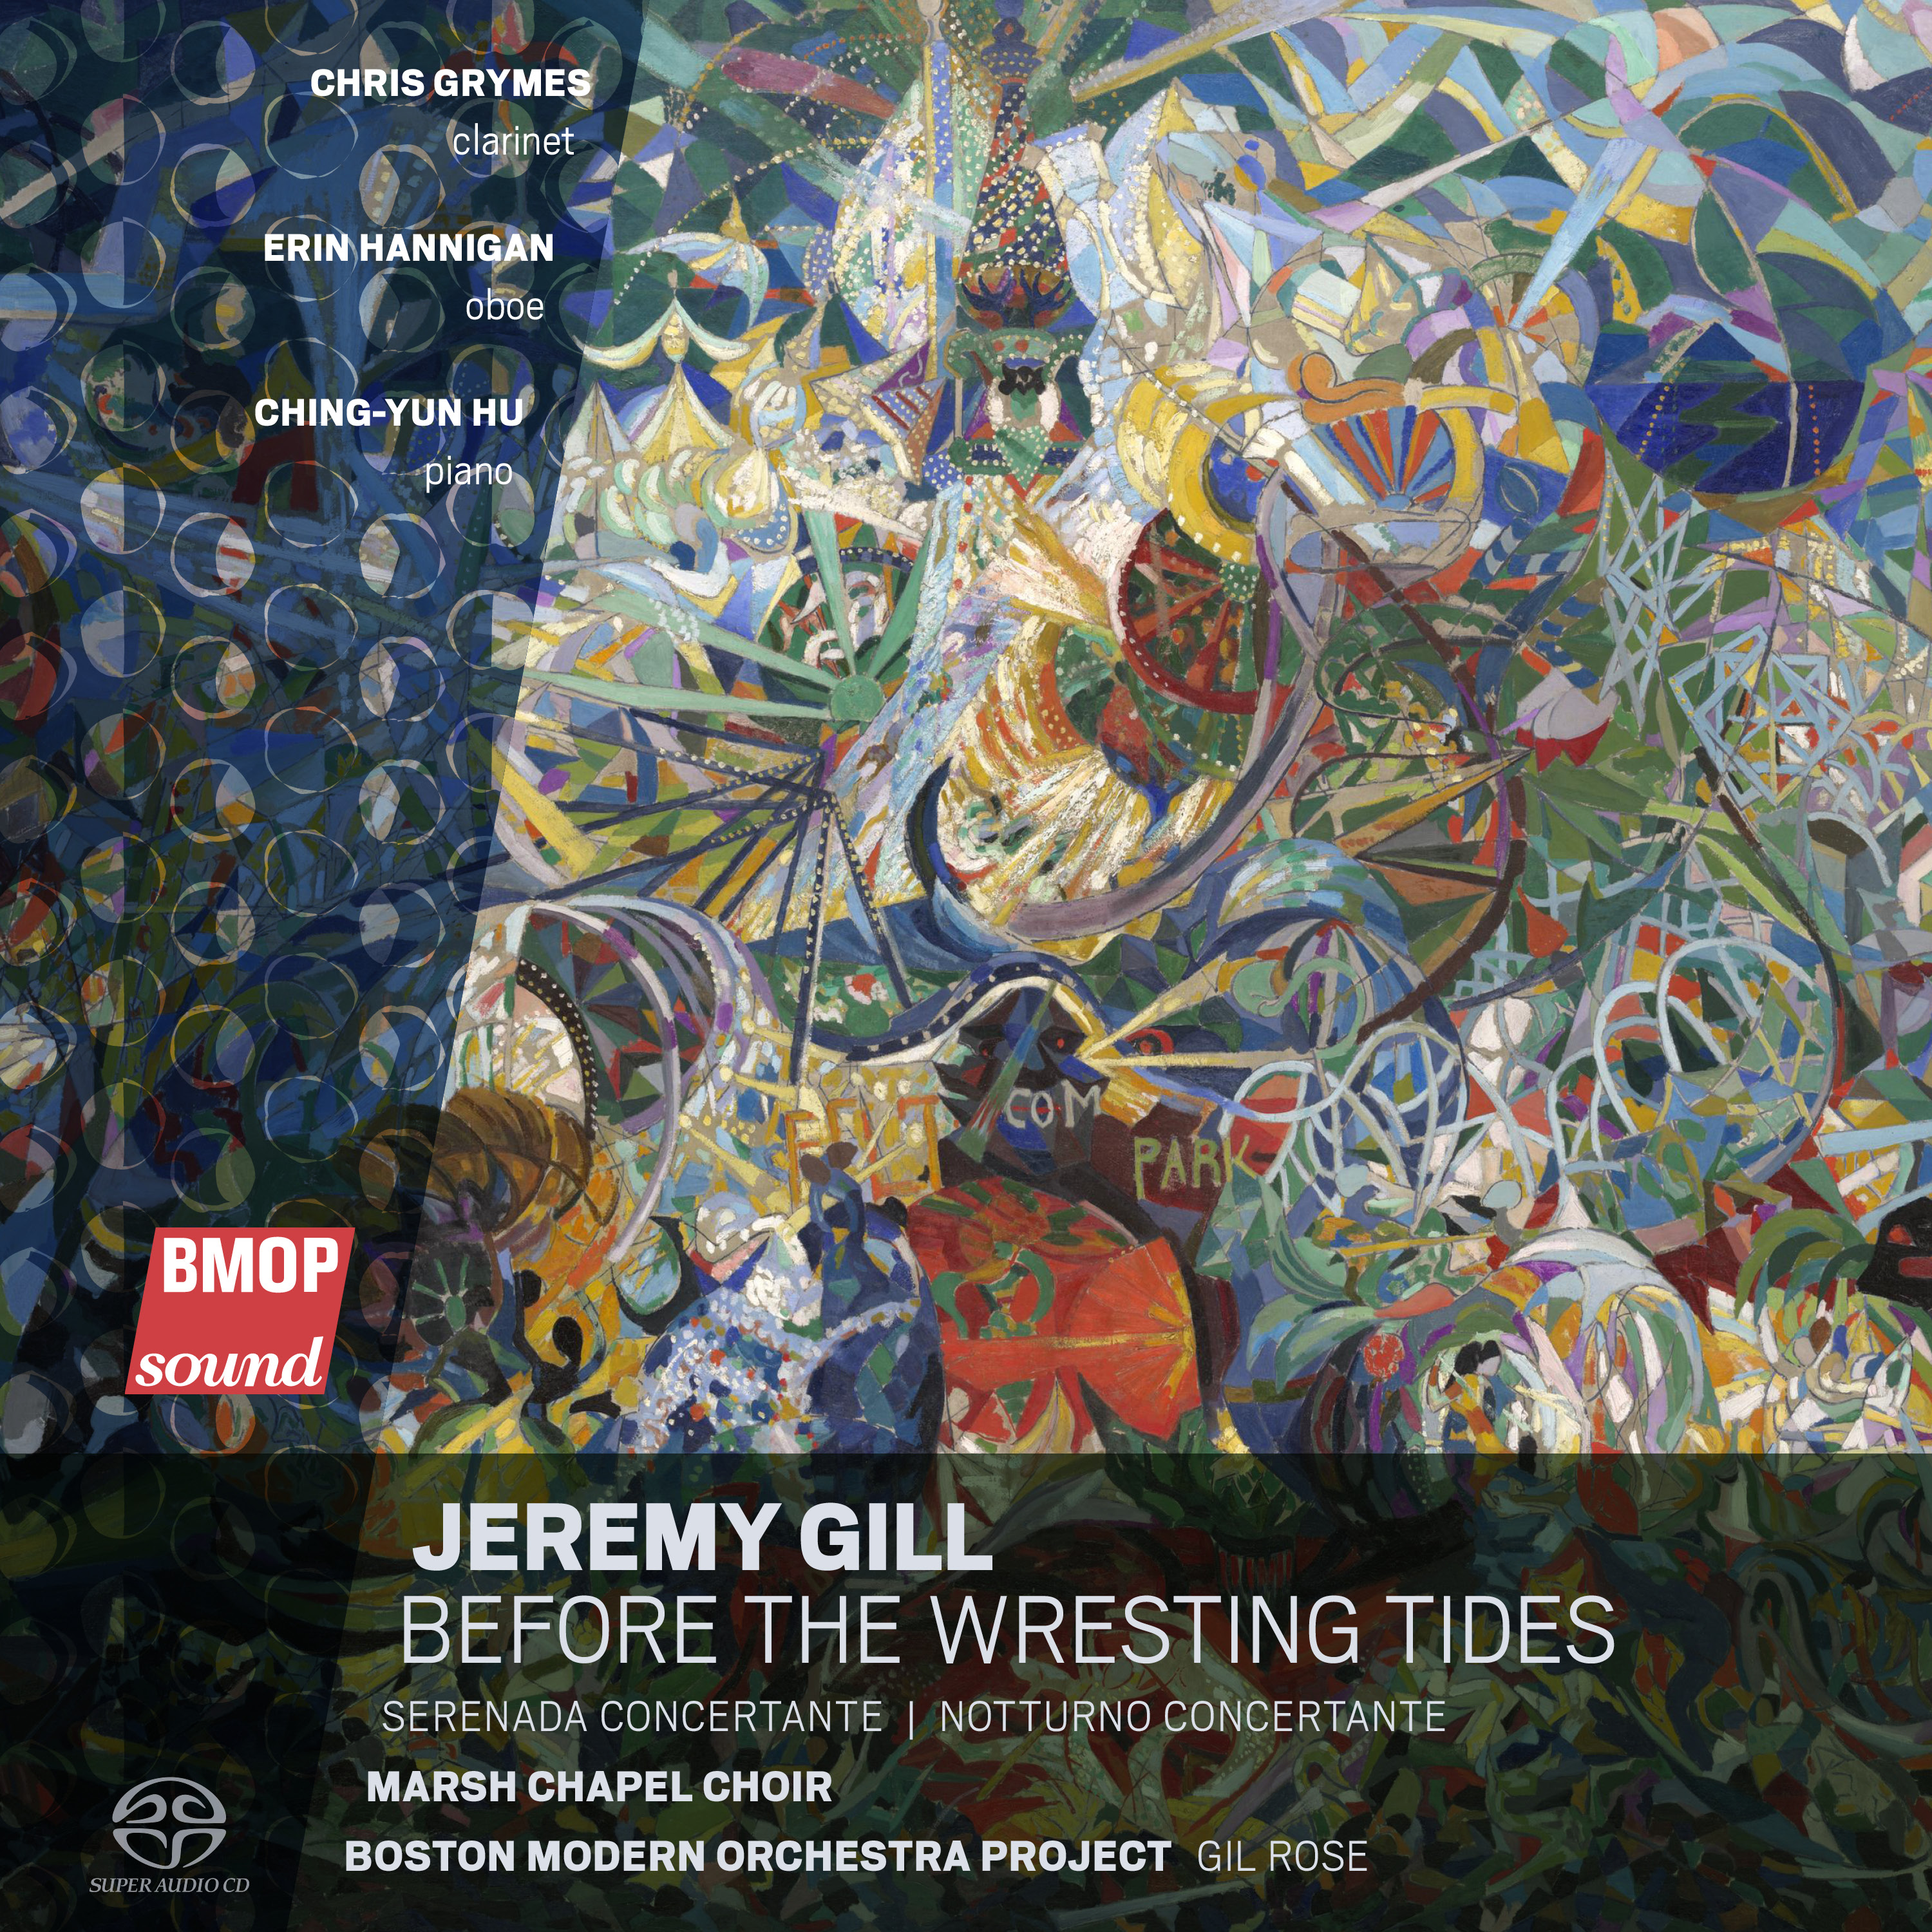 Art for Serenada Concertante by Jeremy Gill by Erin Hannigan, oboe